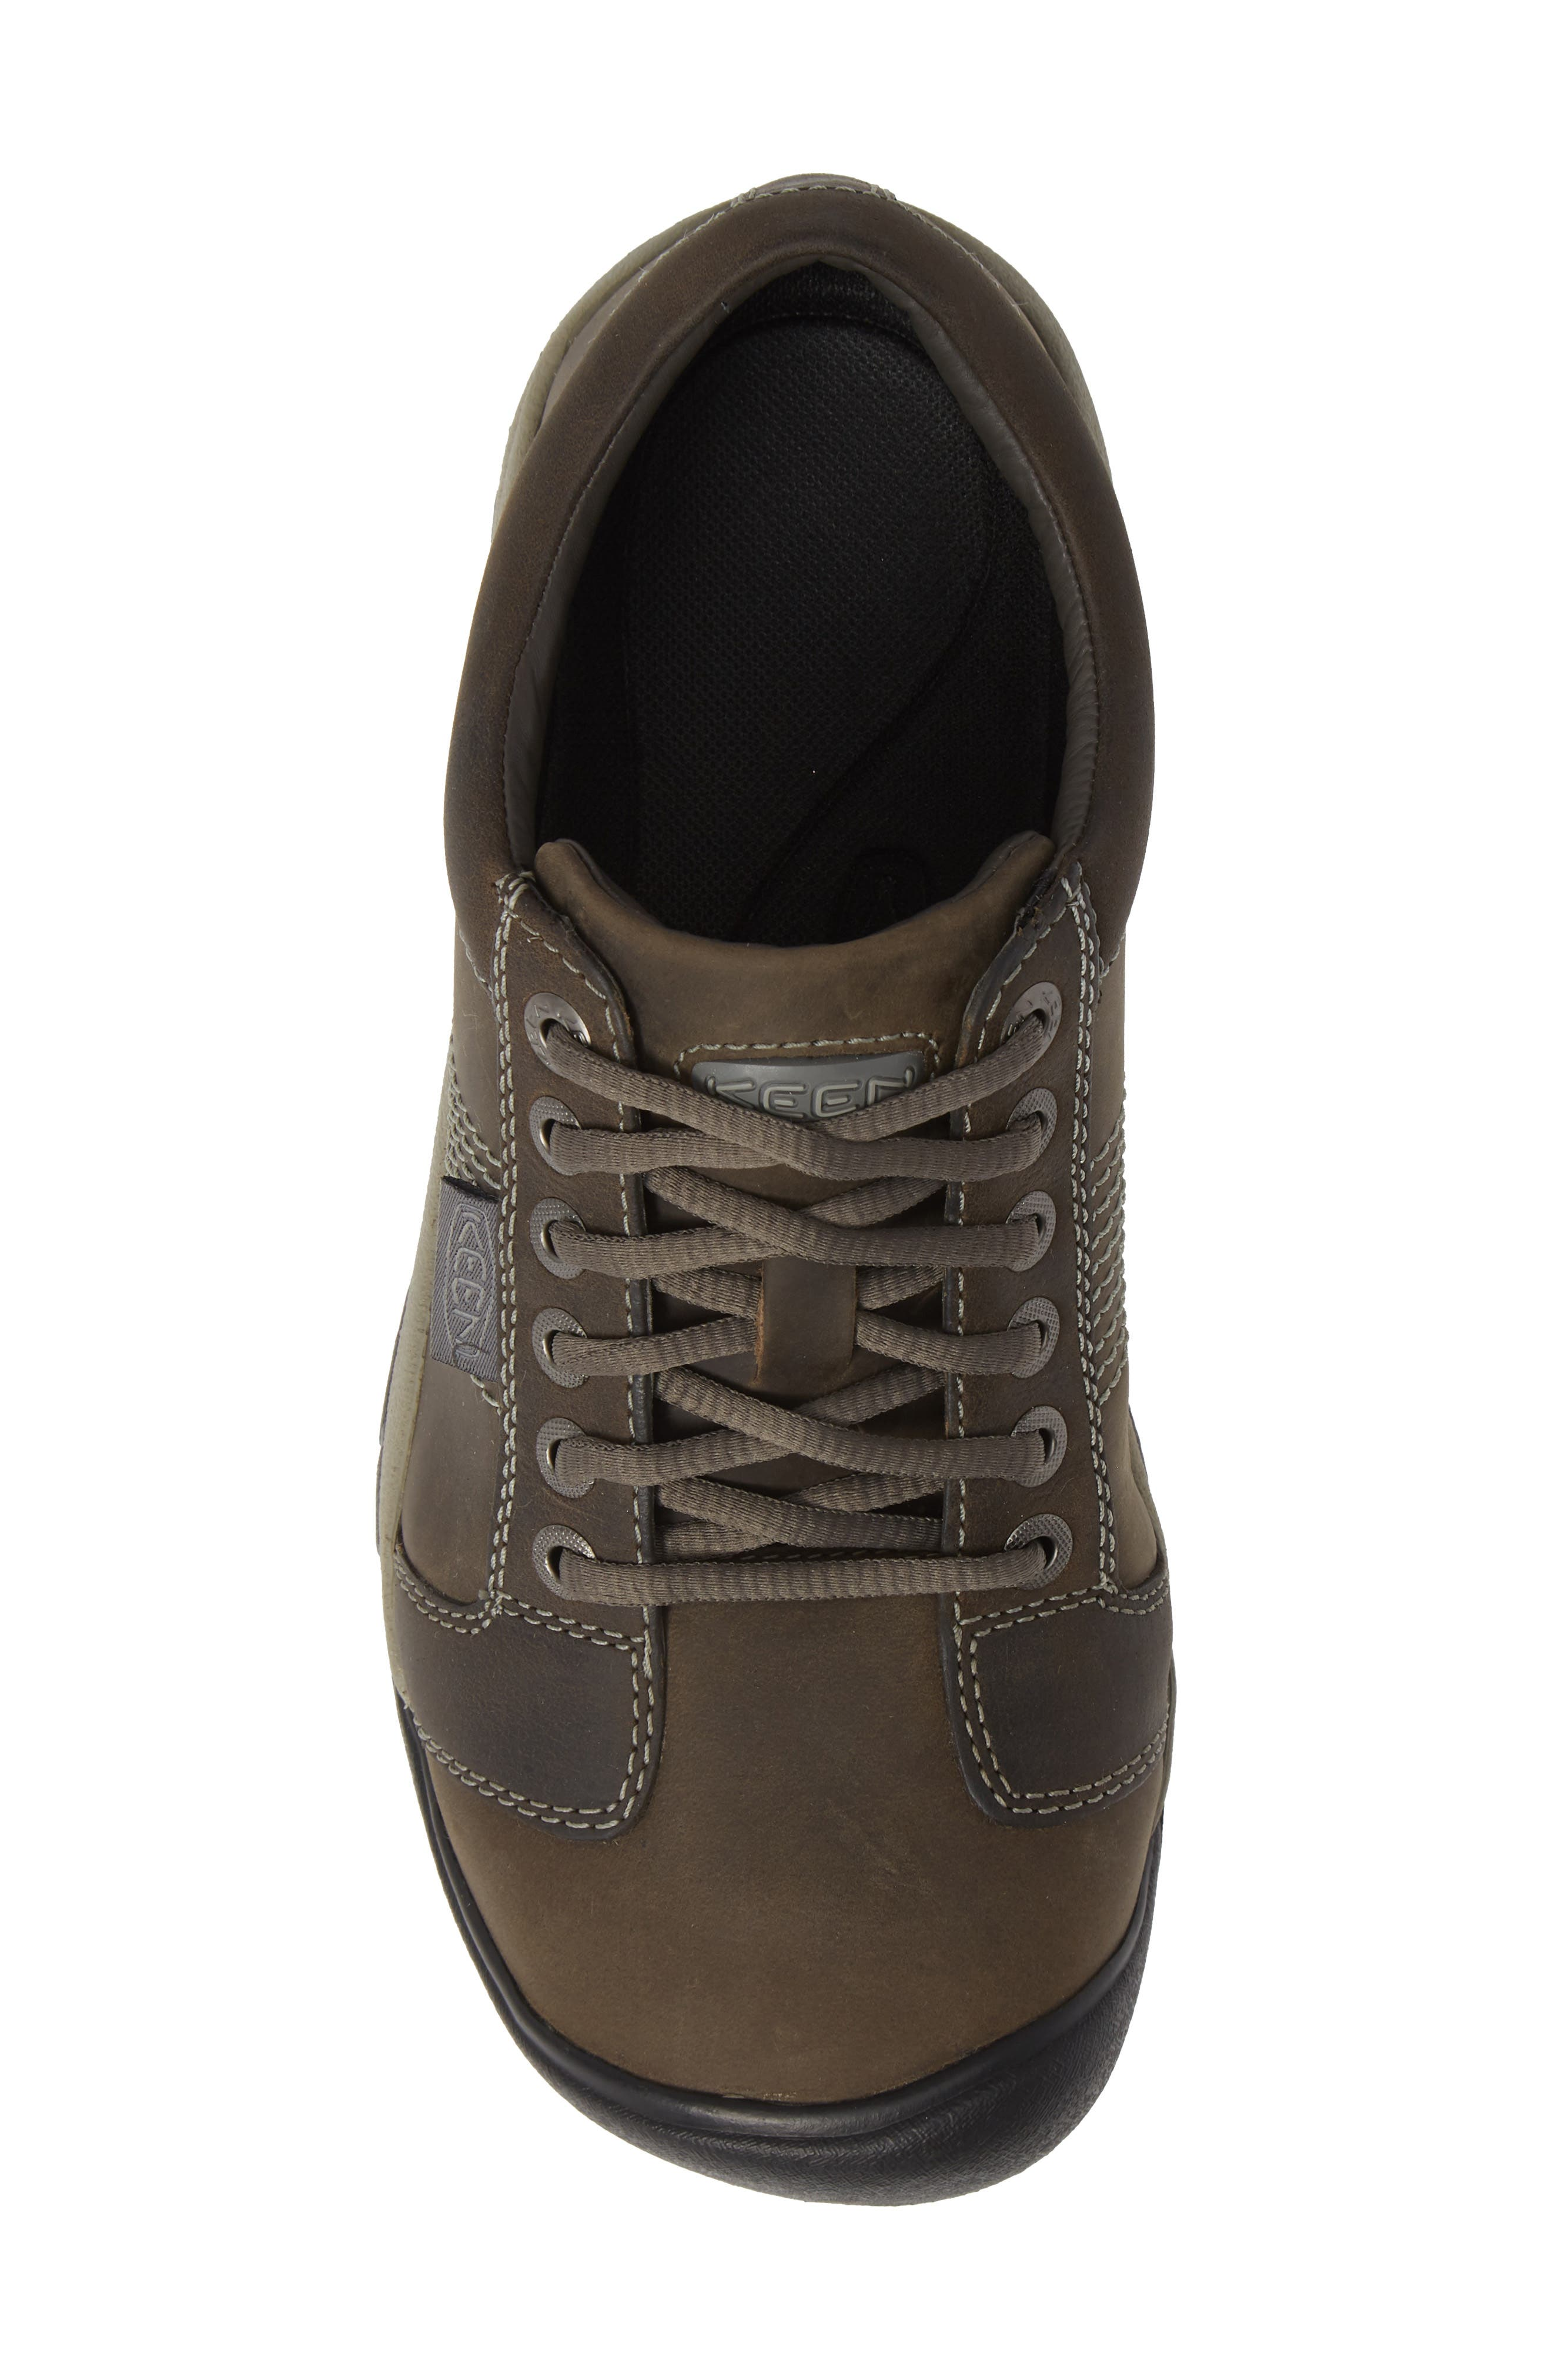 'Austin' Sneaker,                             Alternate thumbnail 5, color,                             GARGOYLE/ NEUTRAL GRAY